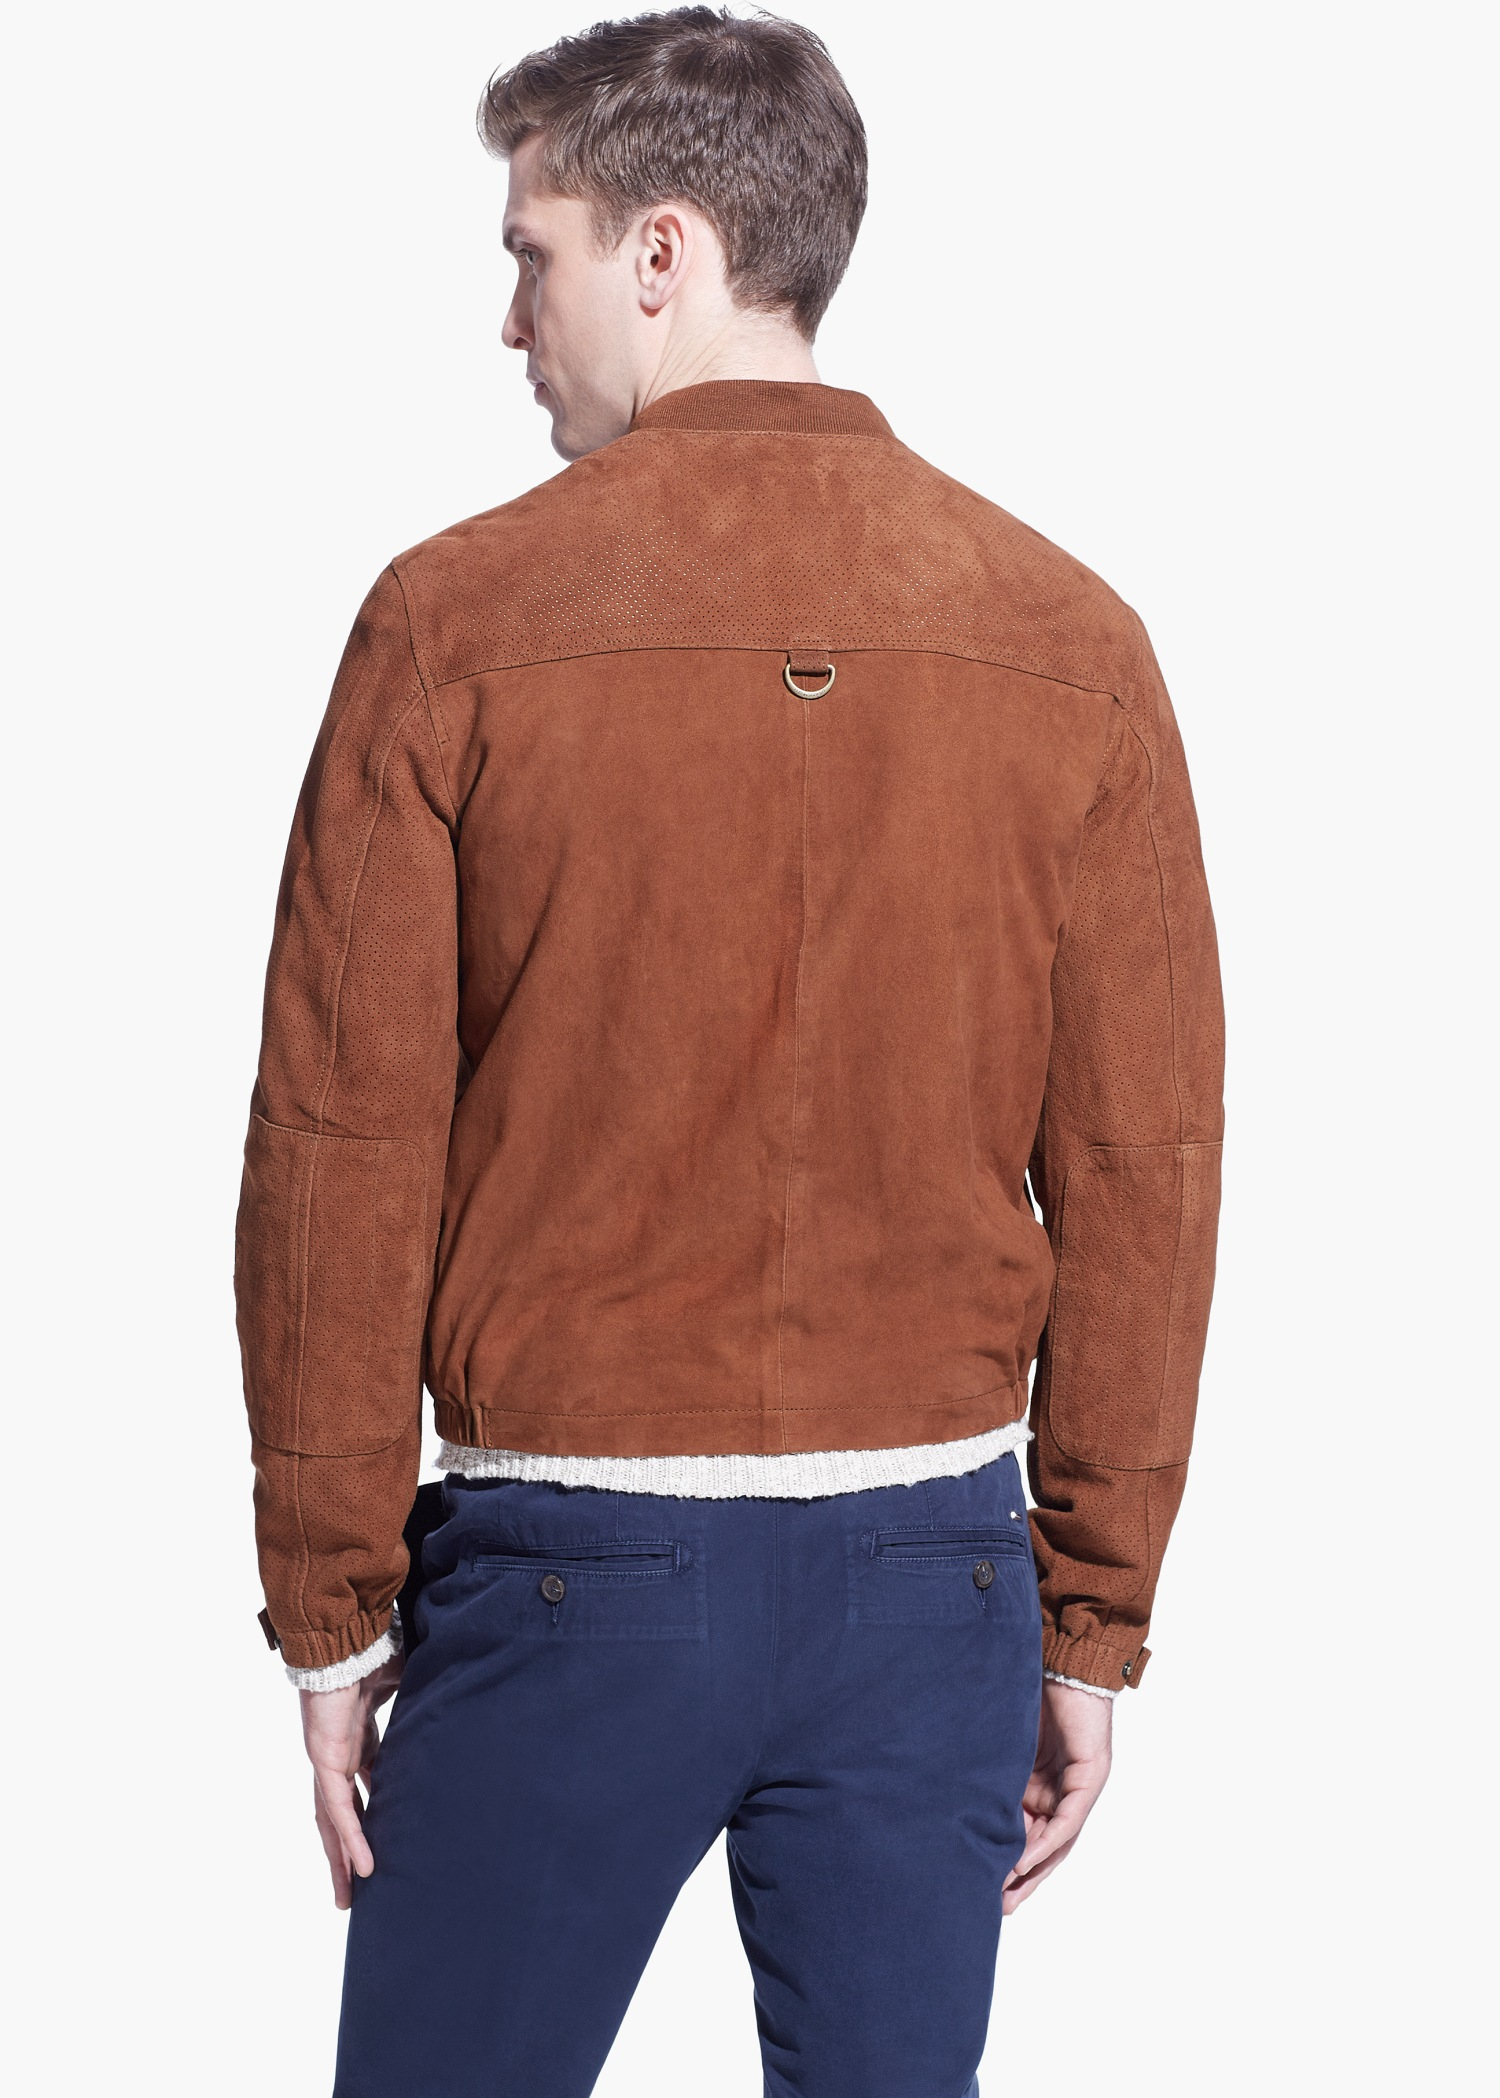 super specials best quality factory price Mango Suede Bomber Jacket in Chocolate (Brown) for Men - Lyst